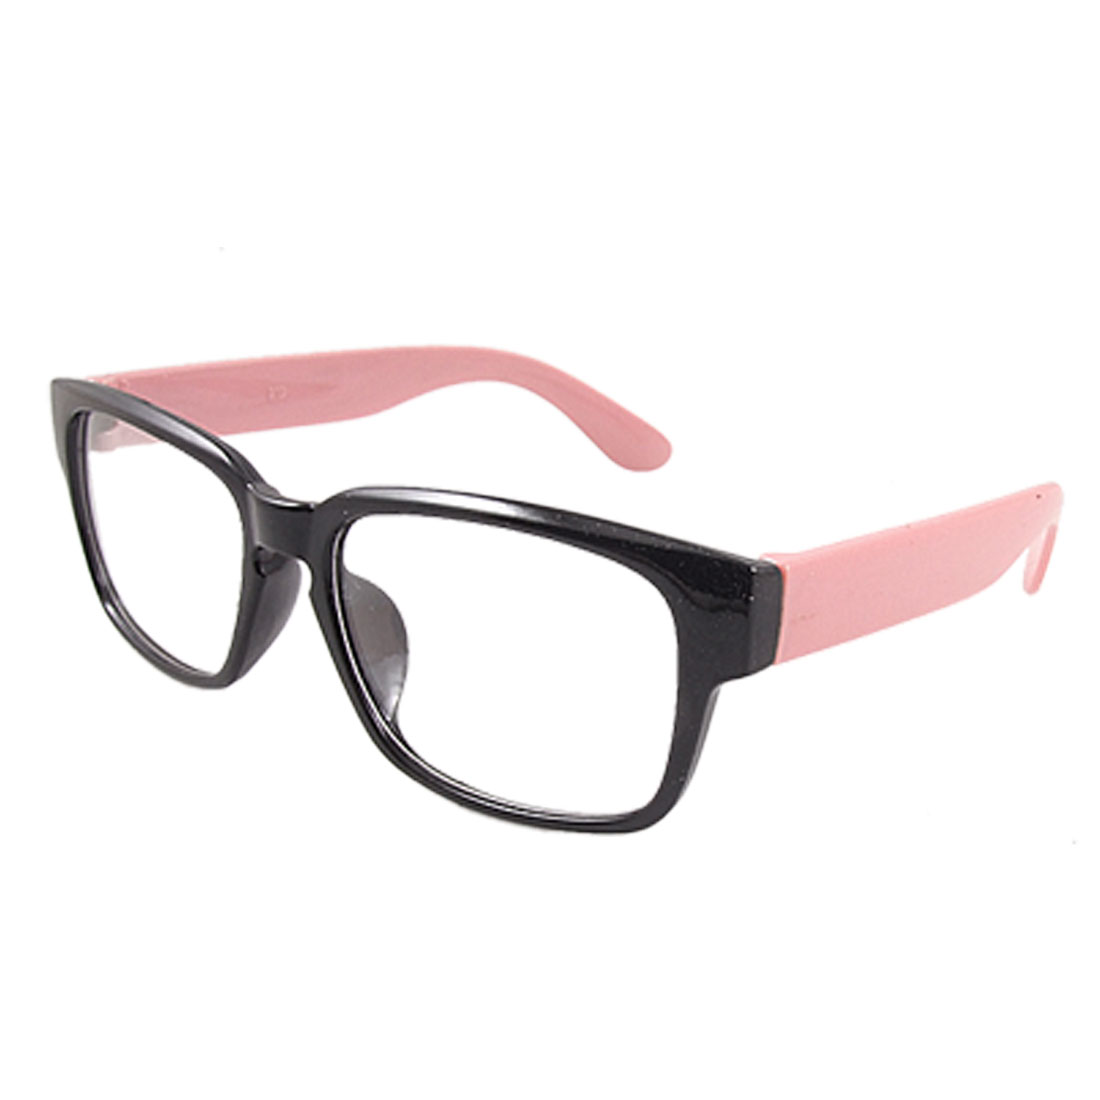 Women Black Pink Plastic Arms Clear Lens Spectacles Glasses